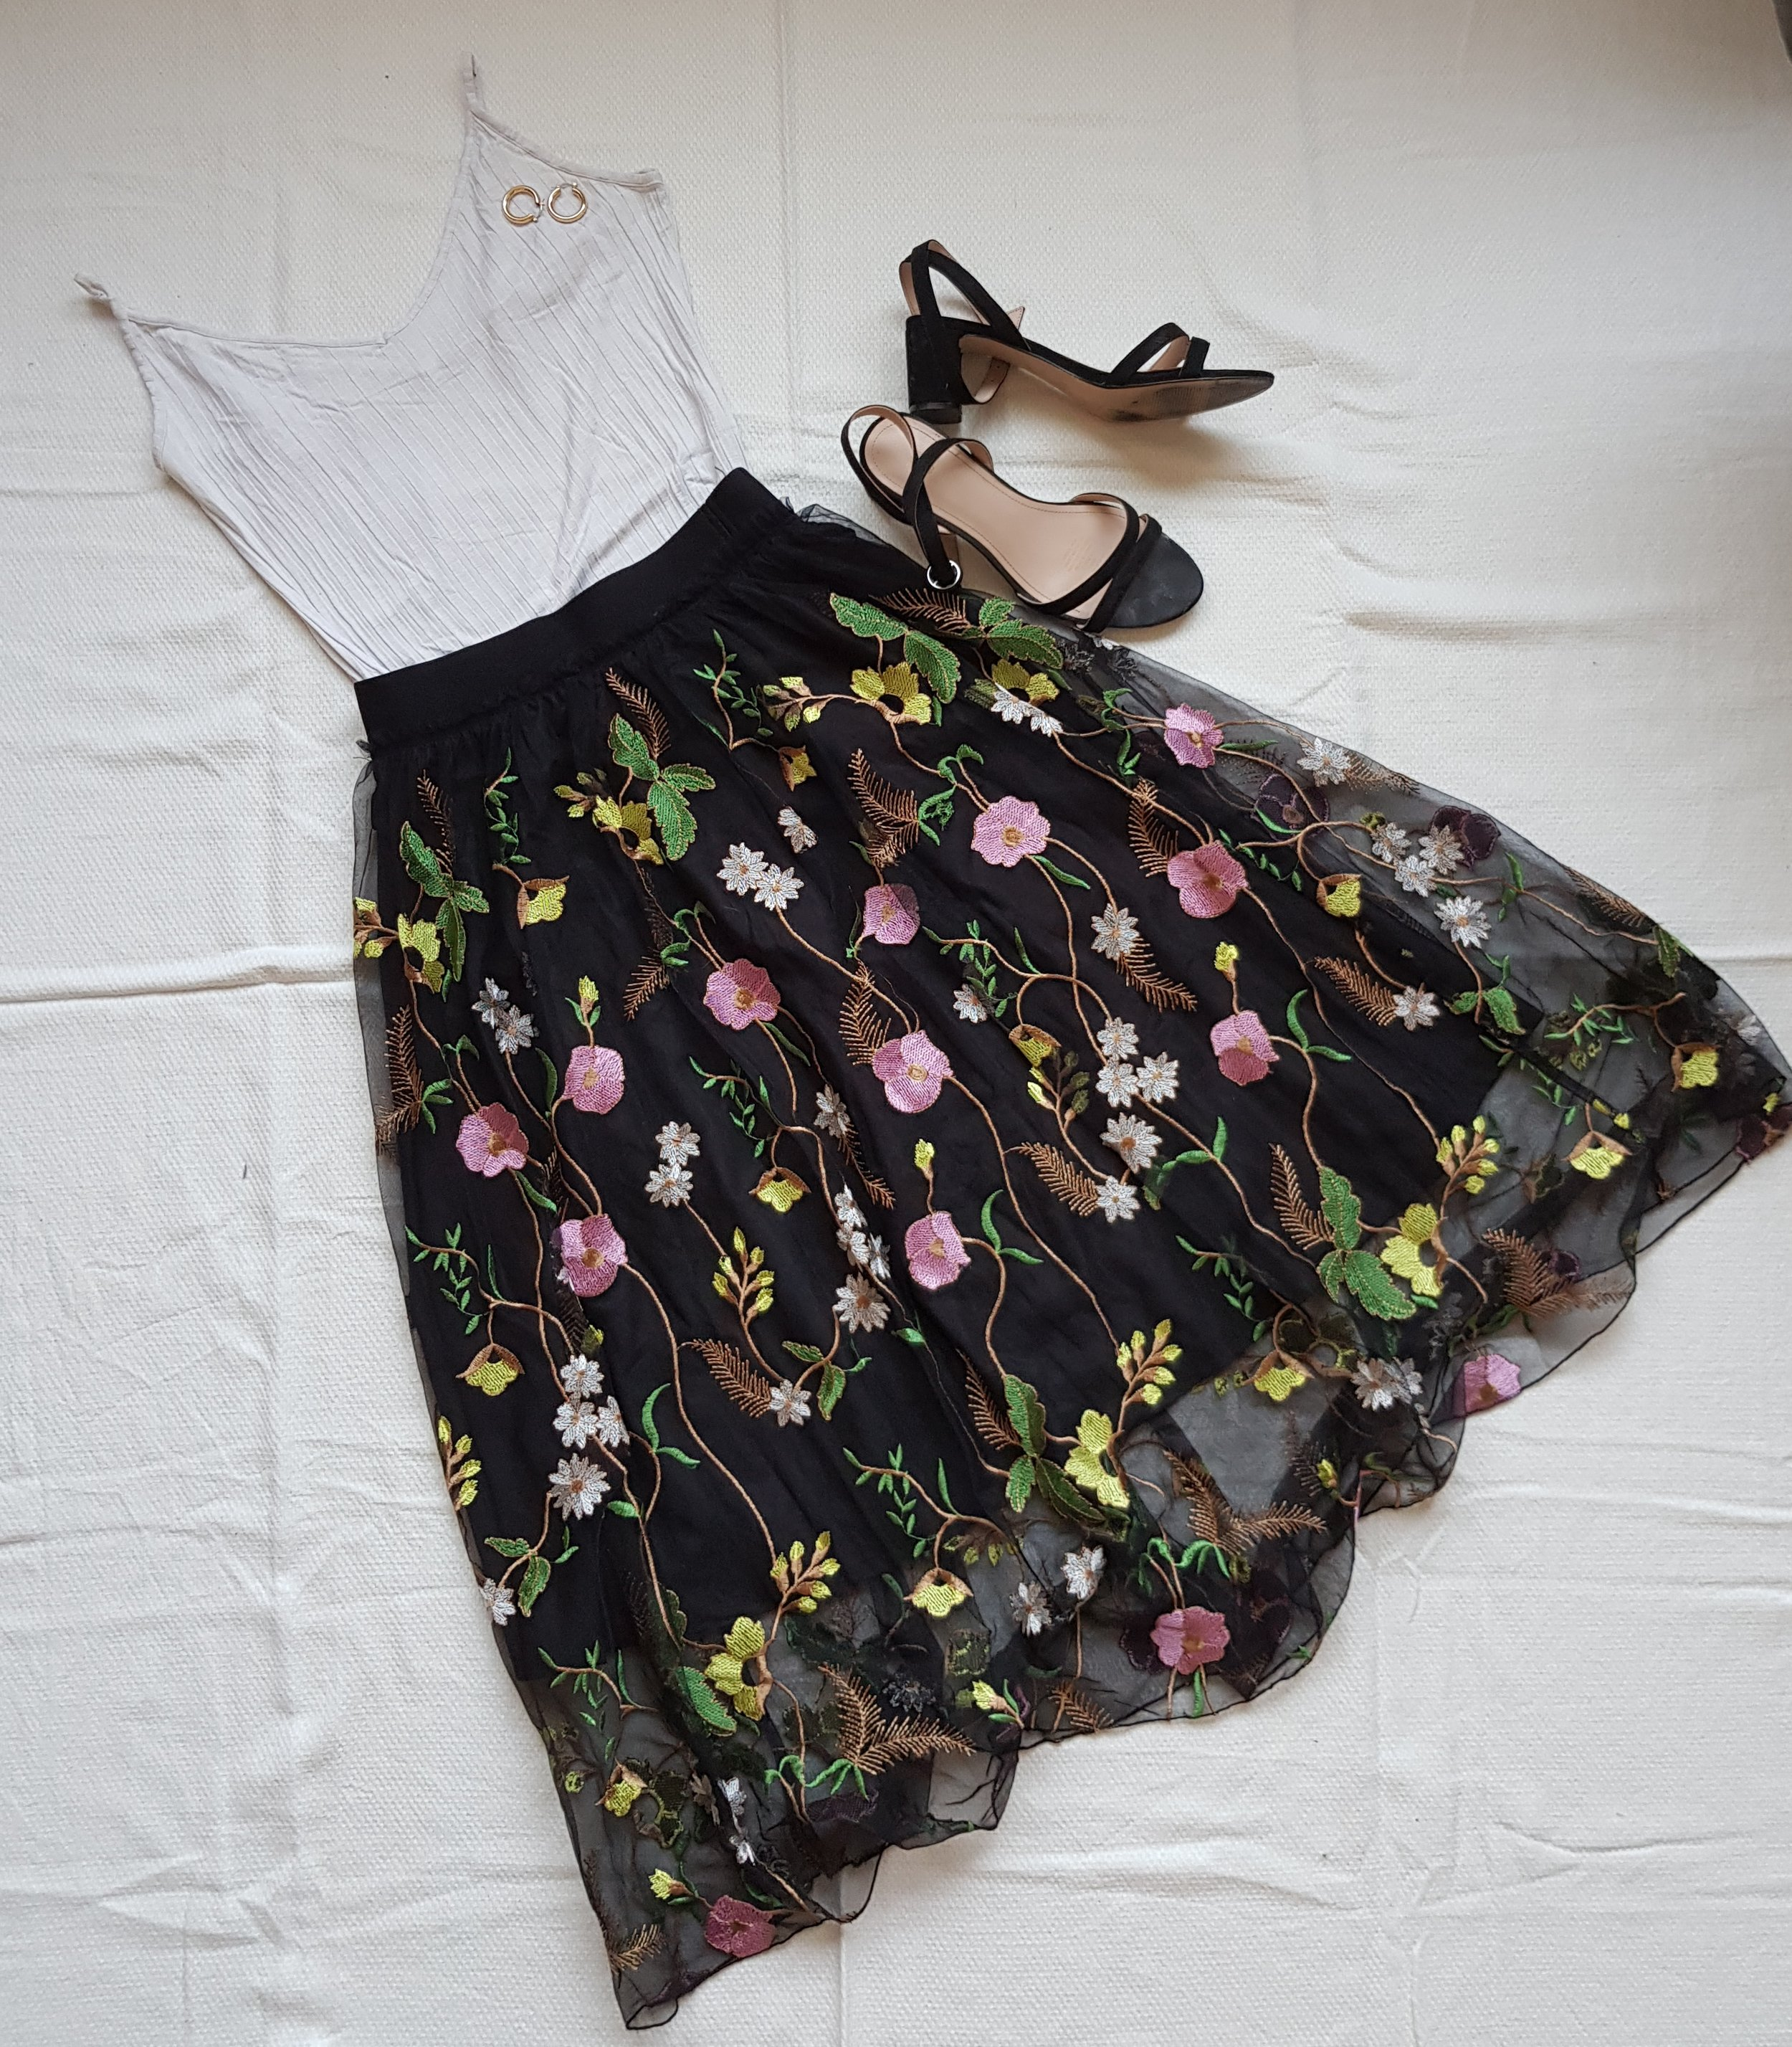 Creative Pink Flowers - Skirt @H&MShirt, shoes @H&MEarrings @UrbanOutfitters